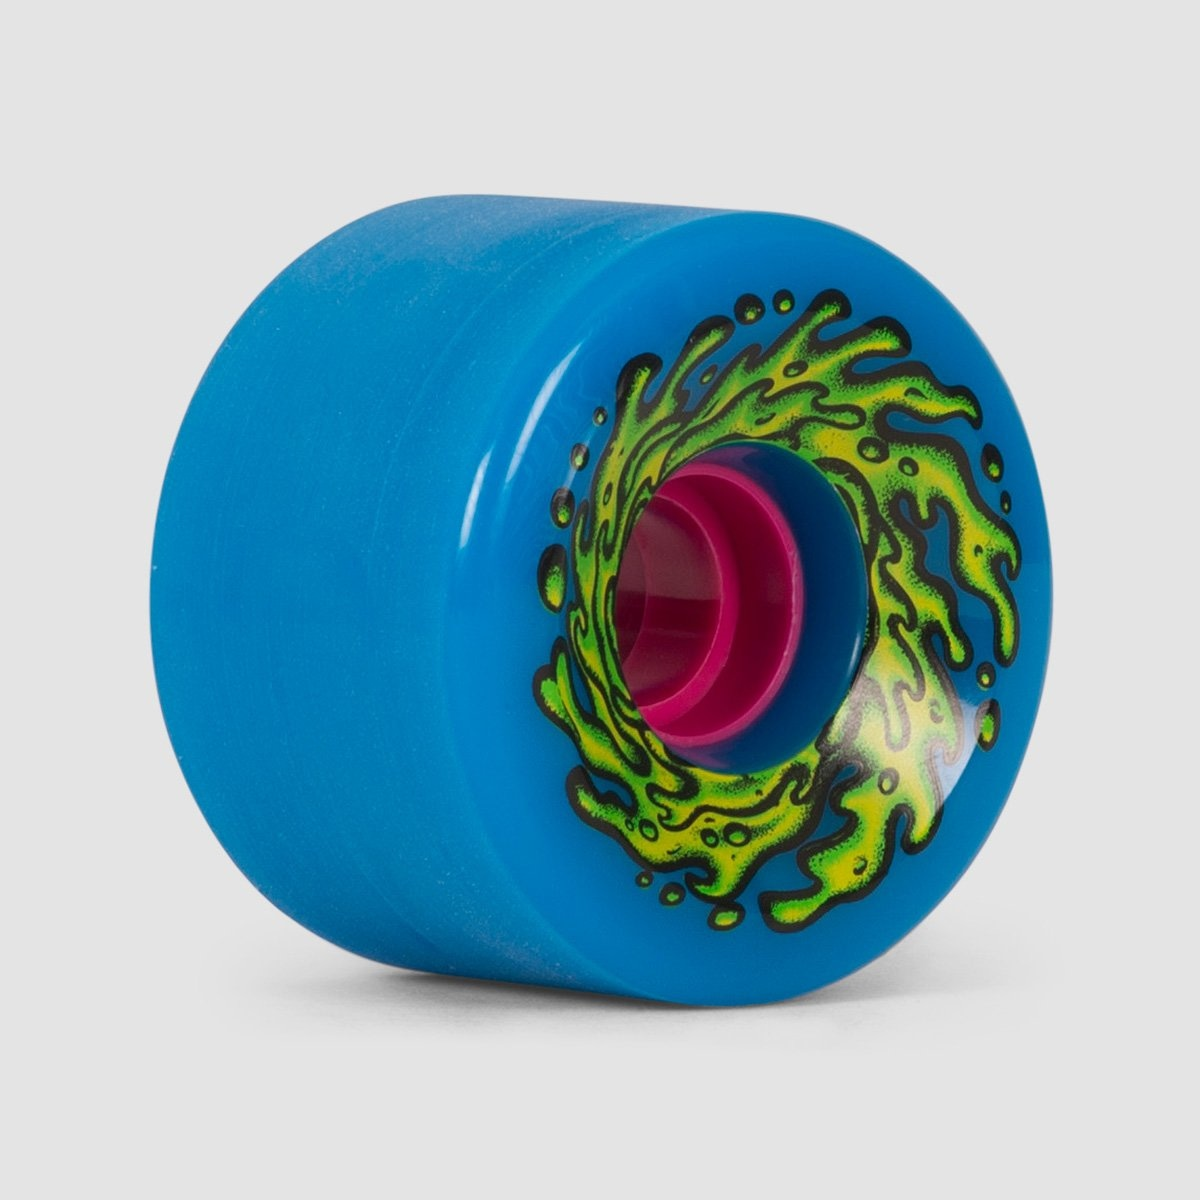 Slime Balls OG 78A Wheels Slime Blue 66mm - Skateboard